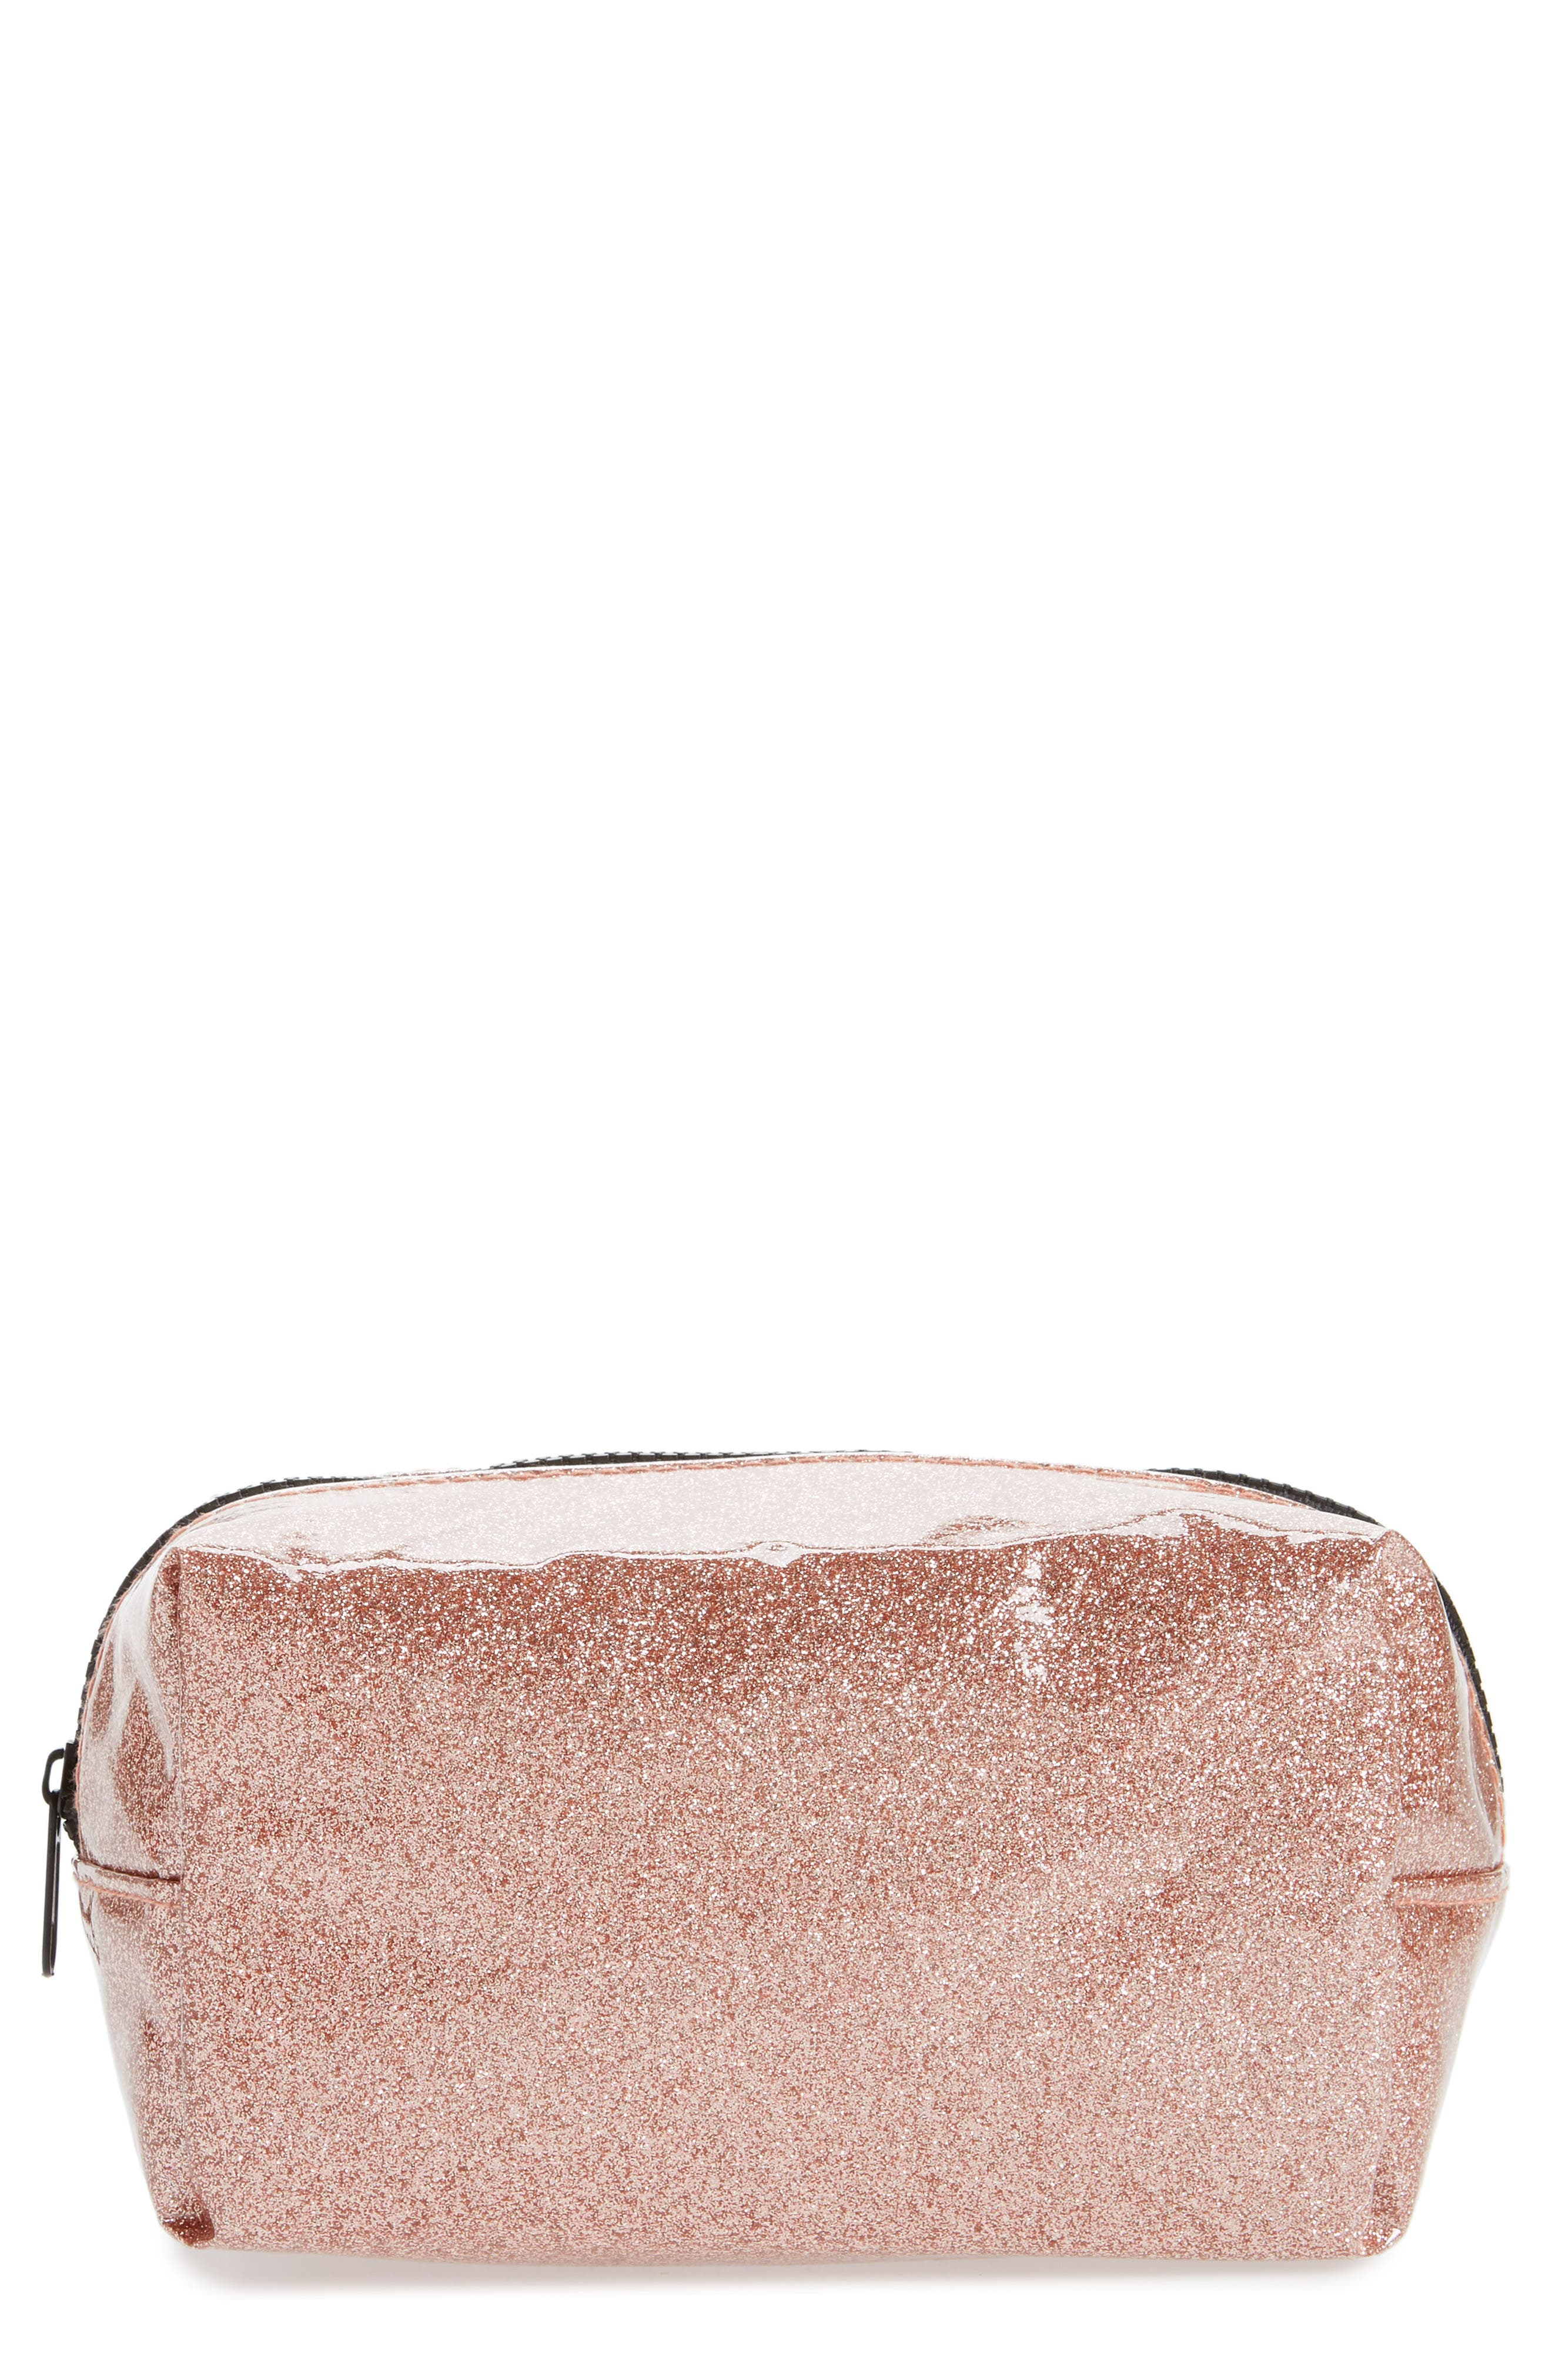 Cosmetics Case,                             Main thumbnail 1, color,                             ROSE GOLD